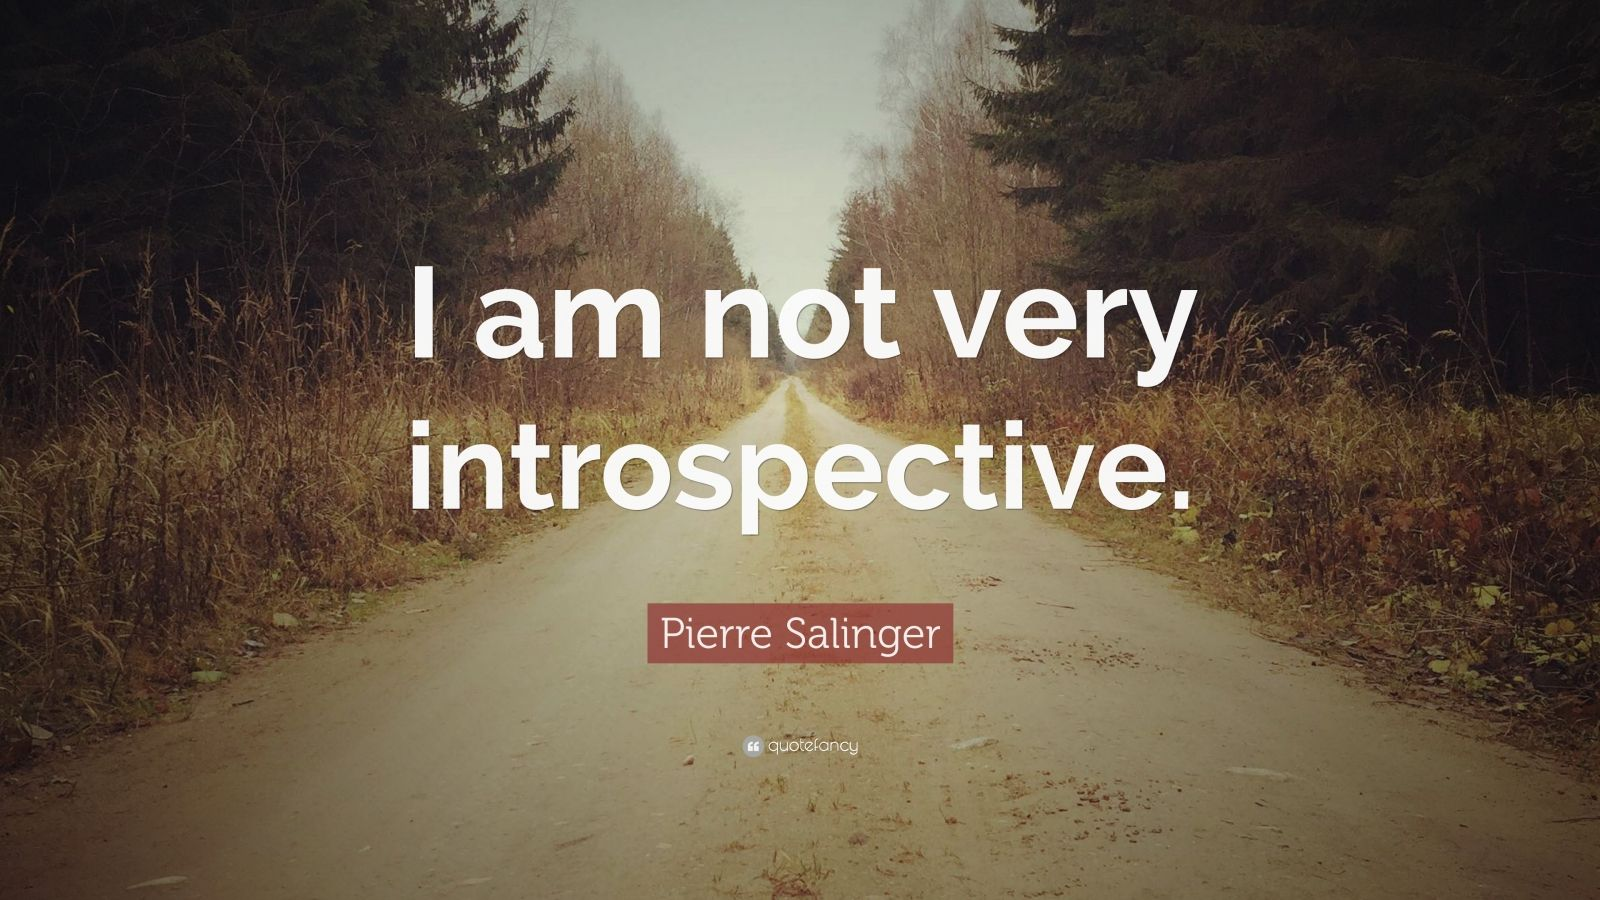 Pierre salinger quote i am not very introspective 7 wallpapers pierre salinger quote i am not very introspective publicscrutiny Images